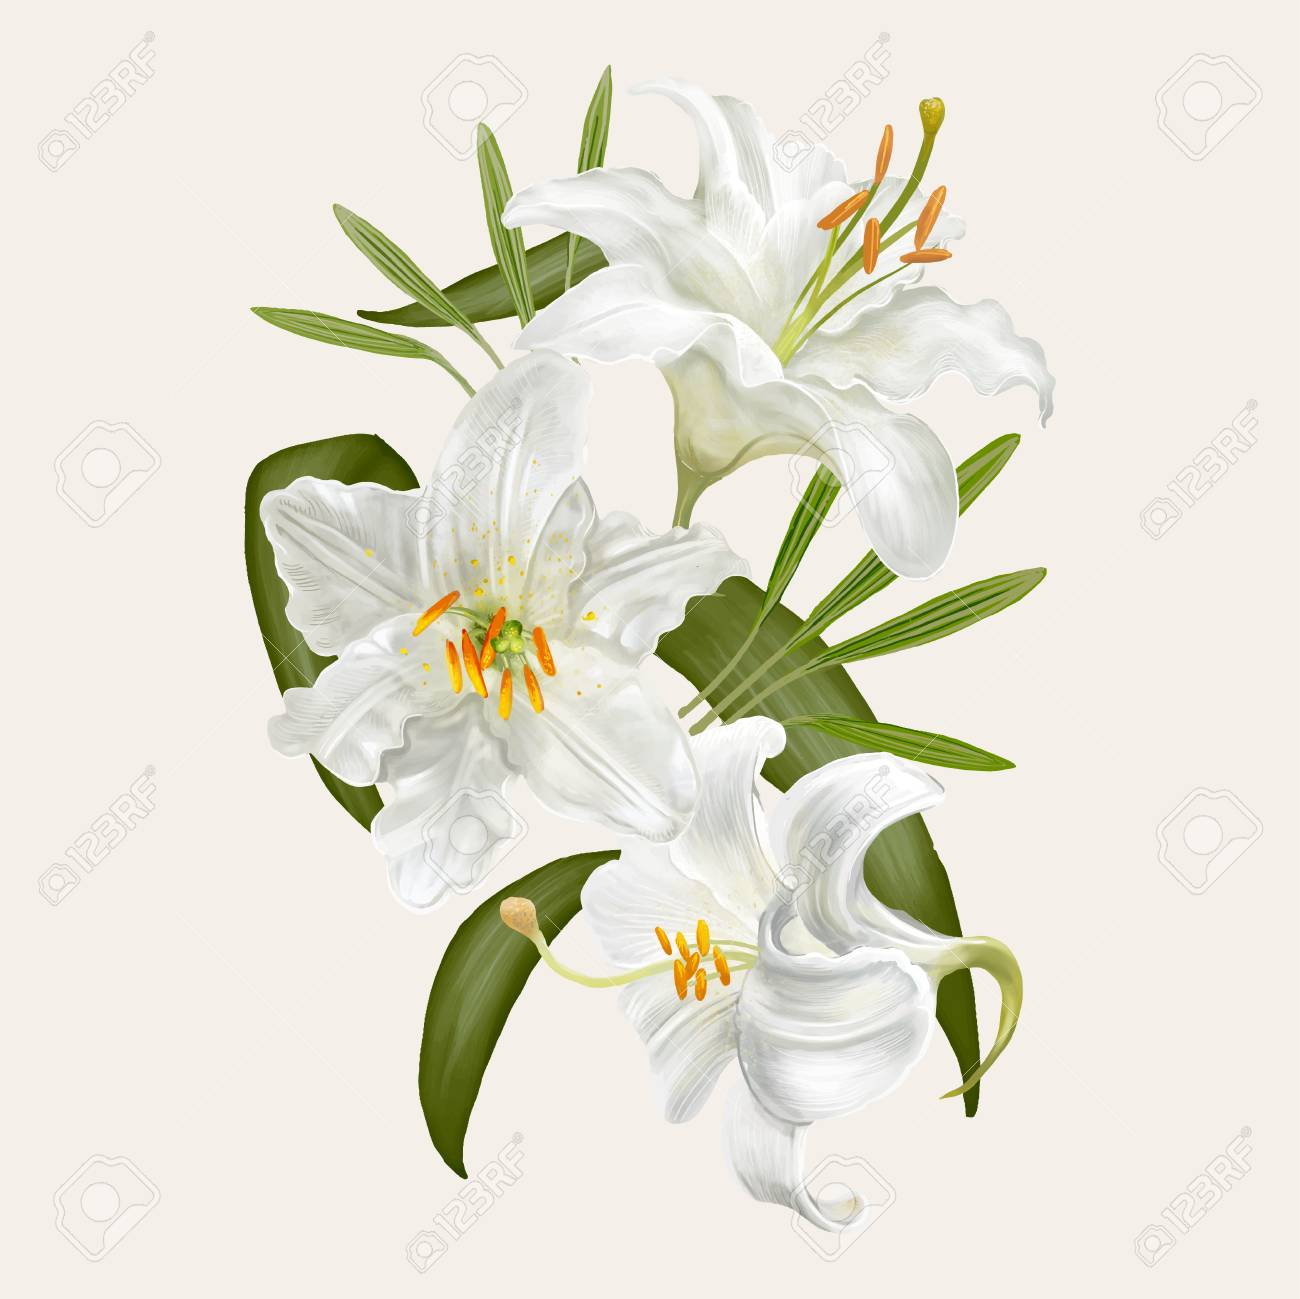 Illustration Drawing Of Lily Flowers Stock Photo Picture And